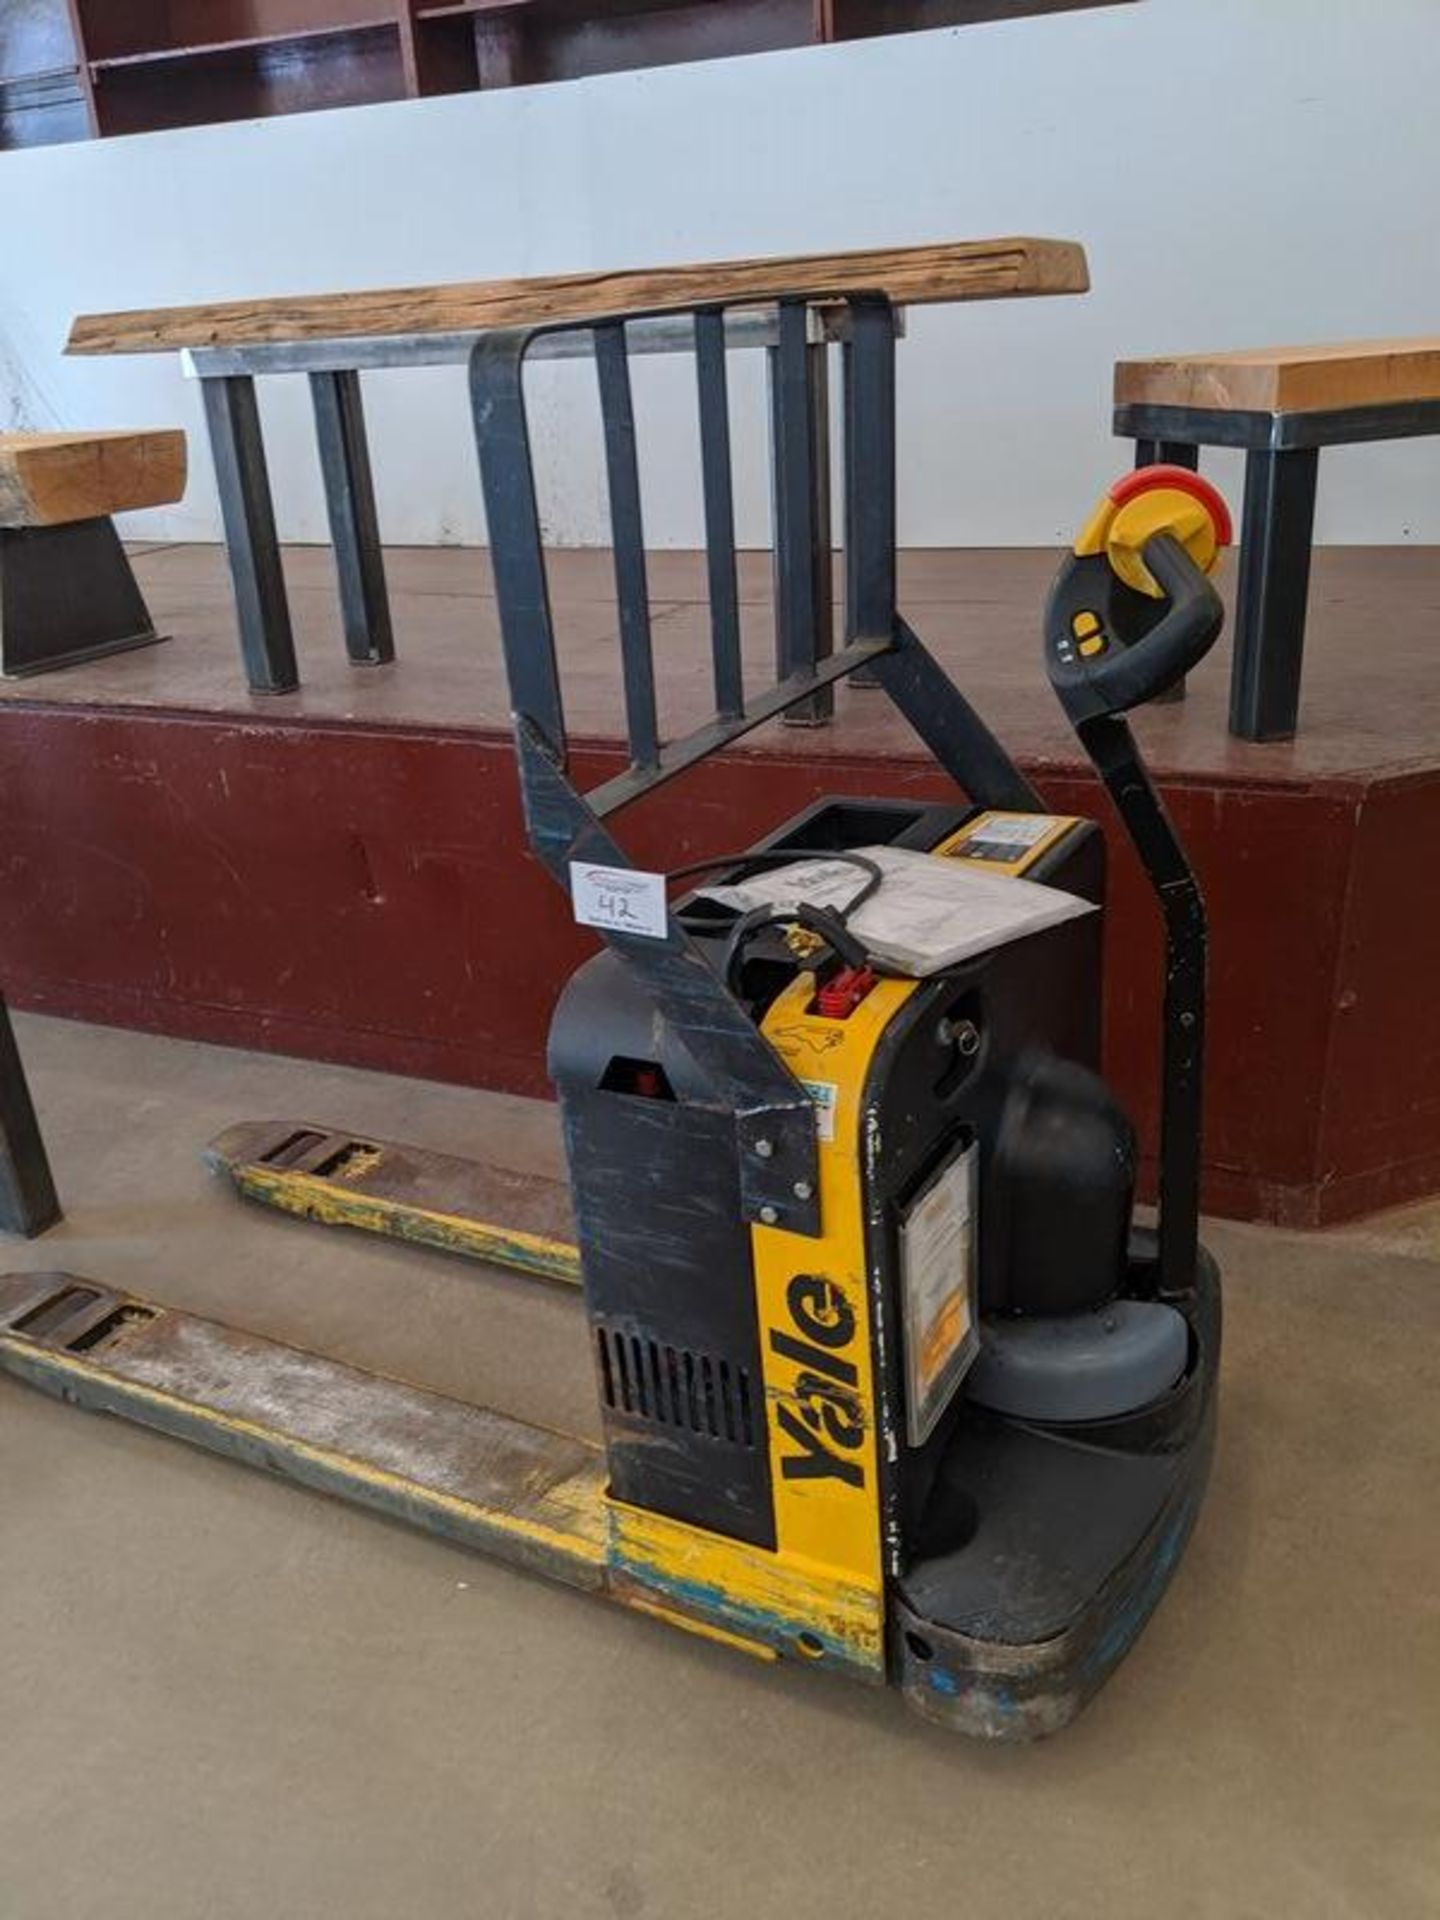 Lot 42 - Yale Model Mpb040 Electric Pallet Jack with Built in Charger